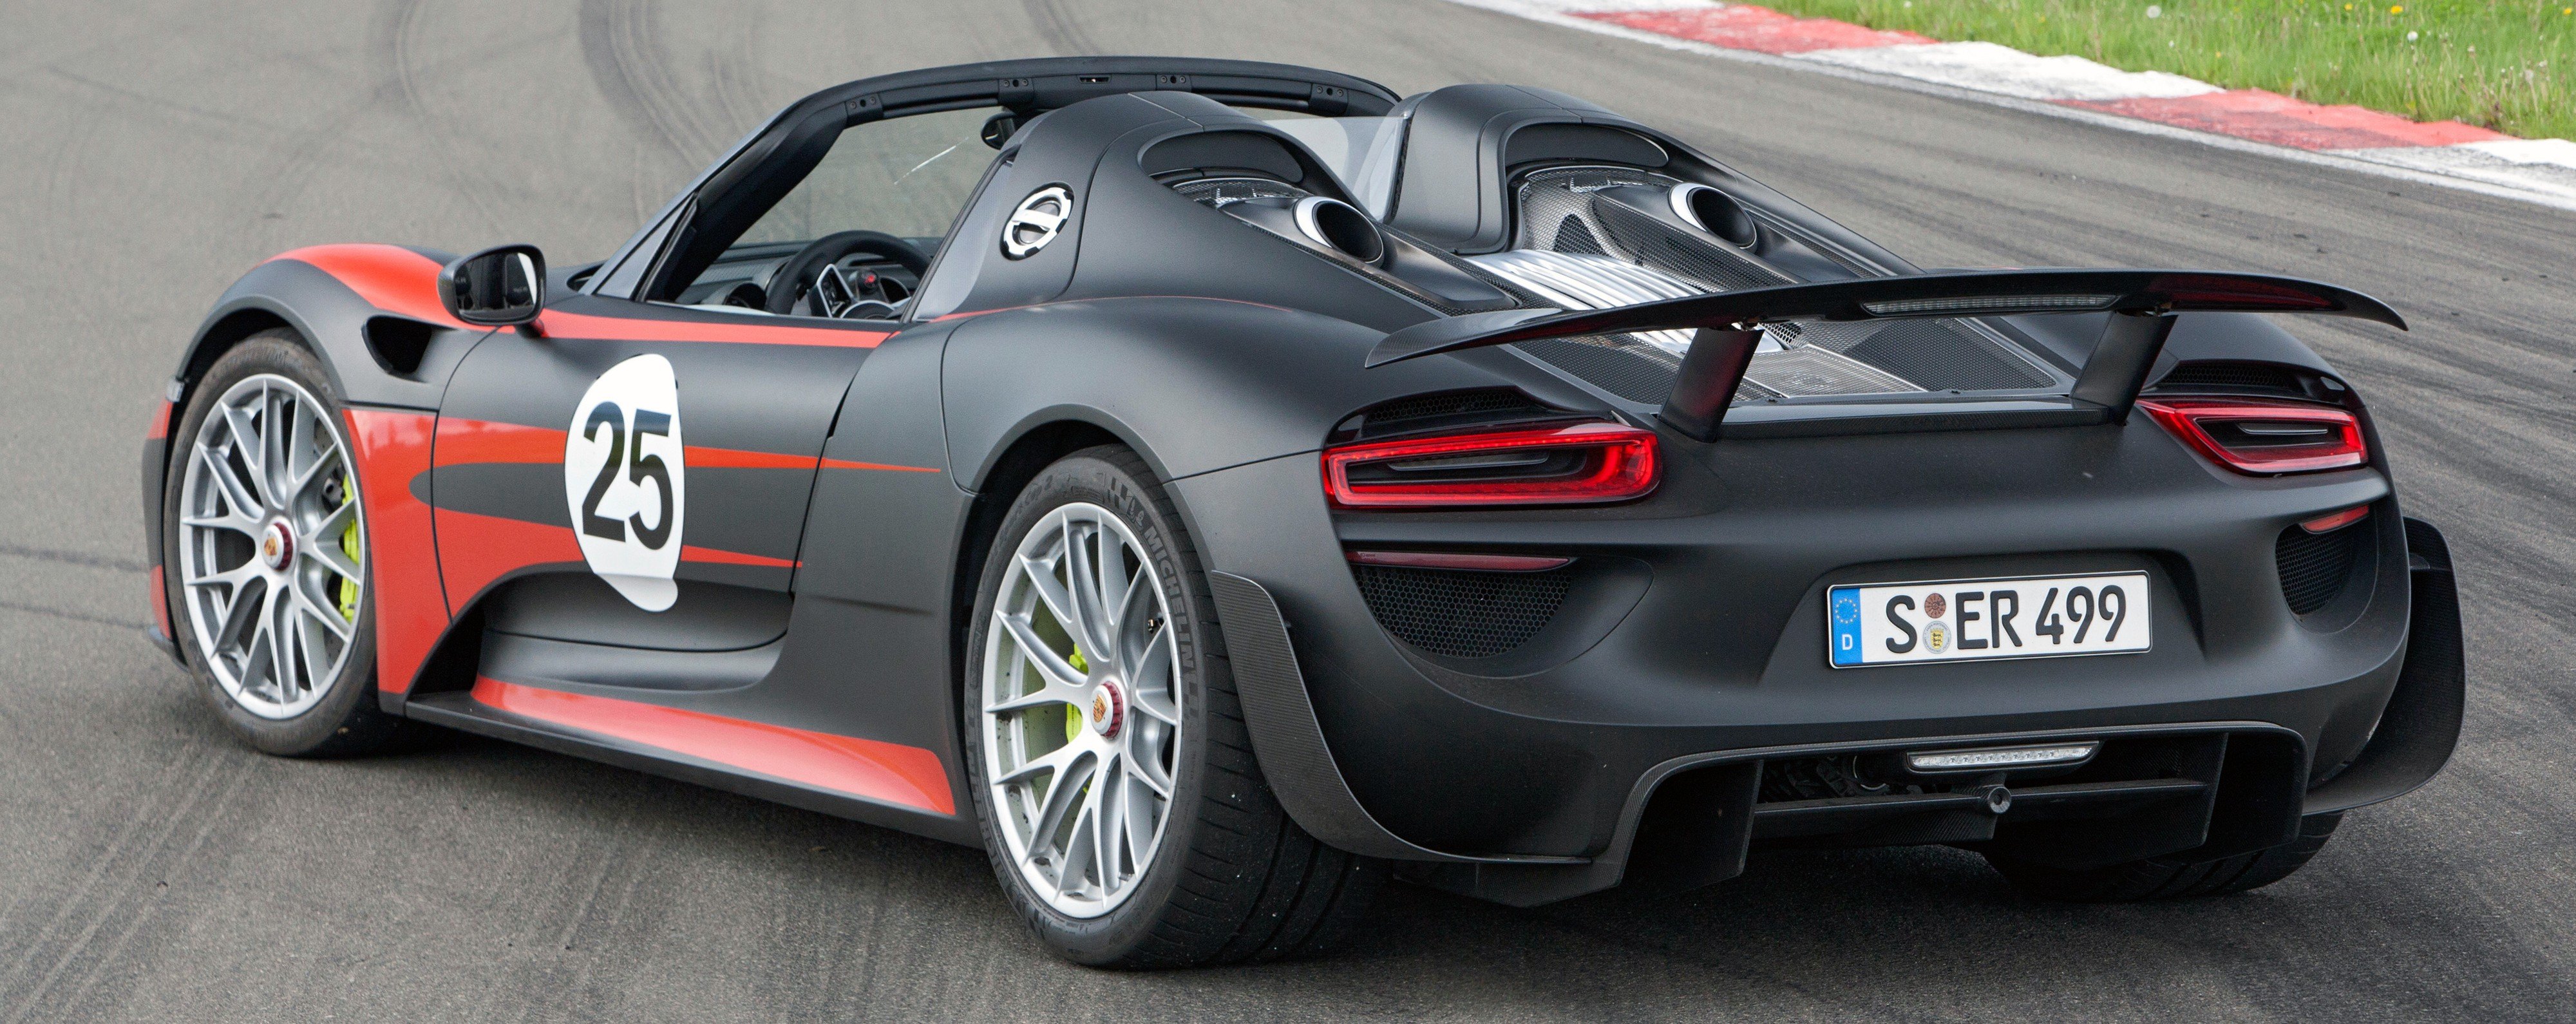 Porsche 918 Spyder 887 Hp 1 275 Nm 340 Km H Paul Tan